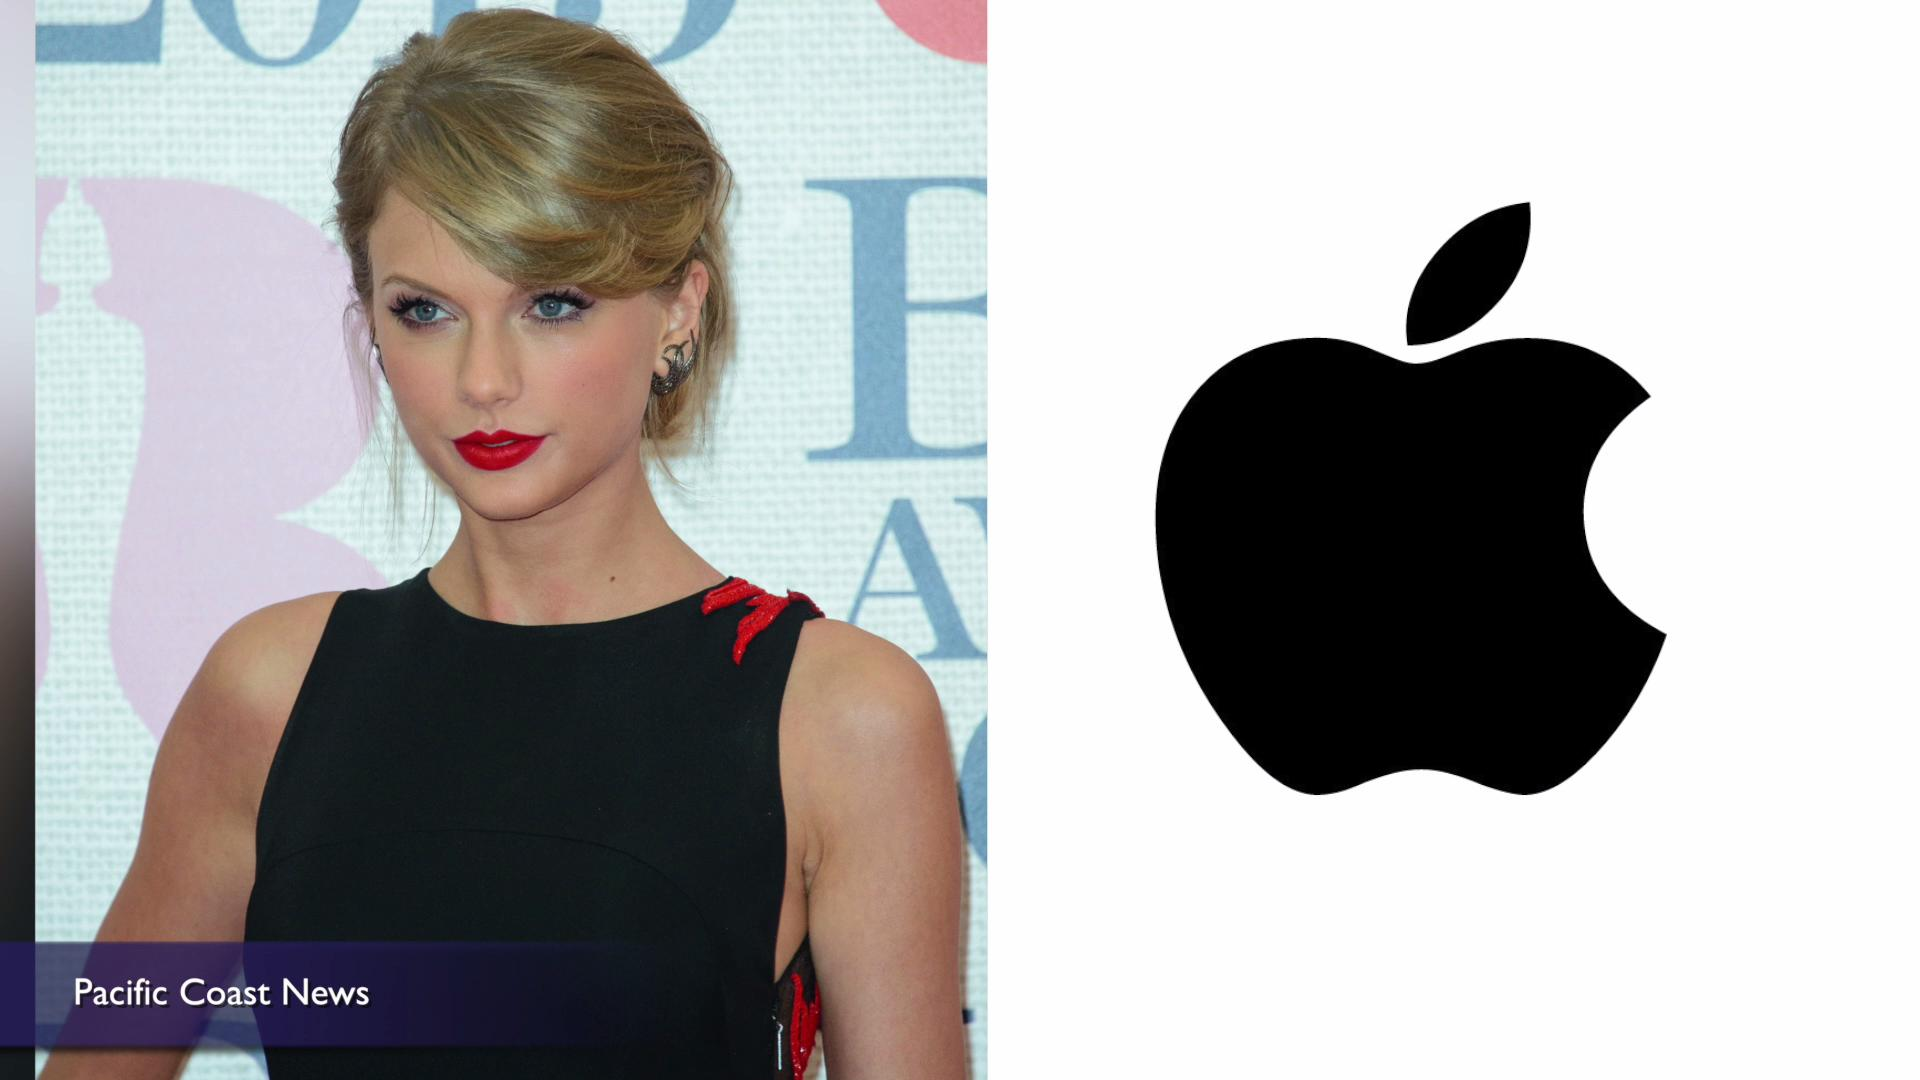 Taylor Swift gets Apple to pay royalties for streaming service